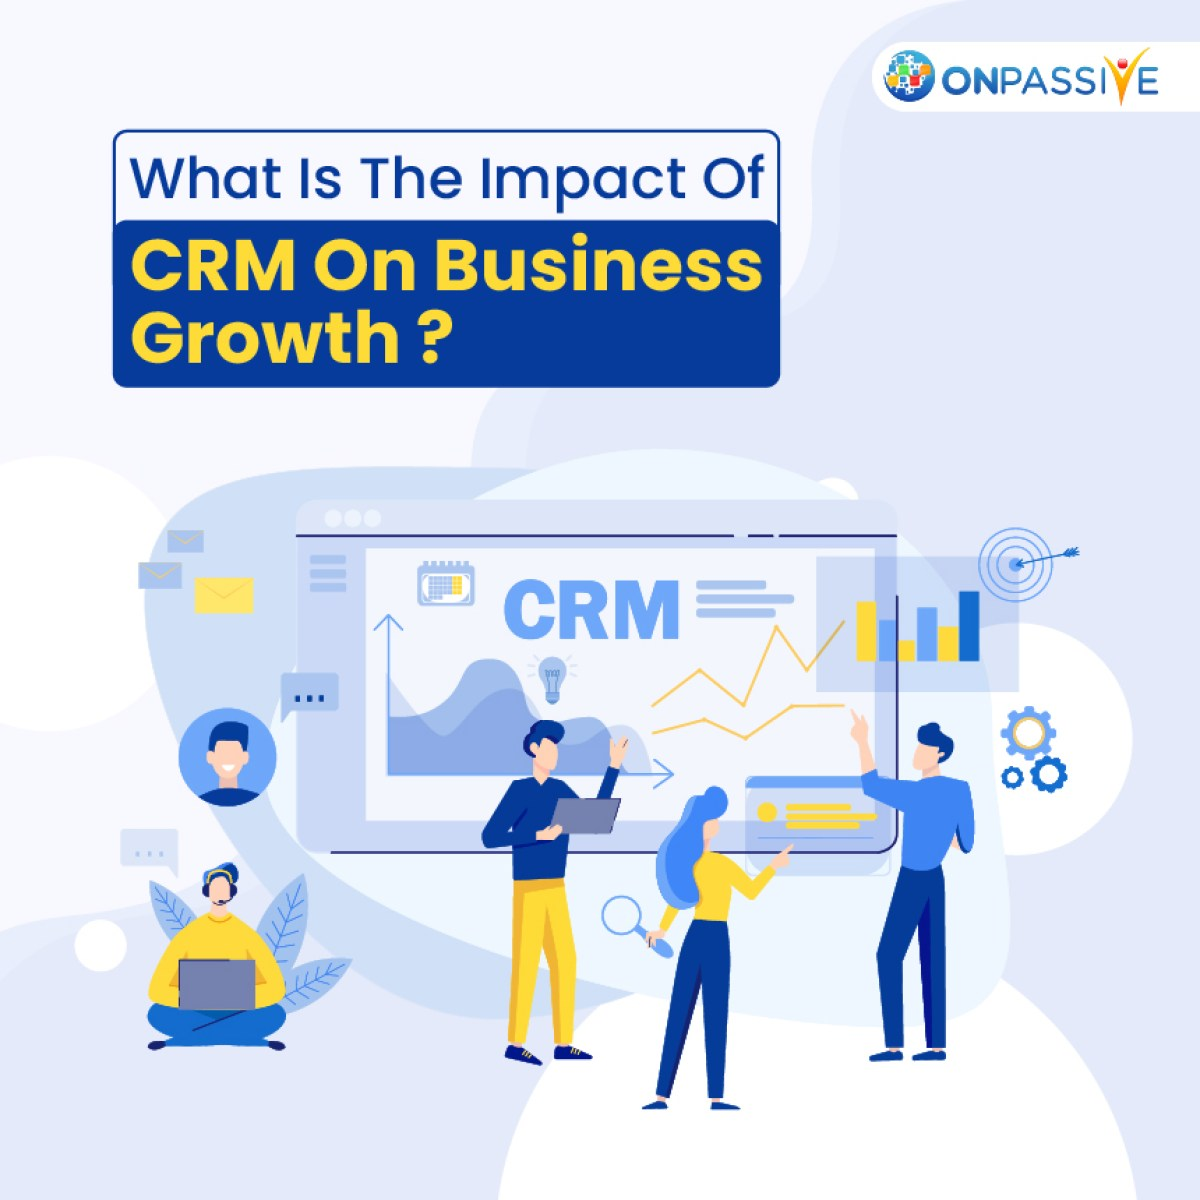 A CRM or customer relationship management is a system that helps businesses enhance and nurture the relationship with existing customers while providing them with the scope to find and build connections with new prospective customers.